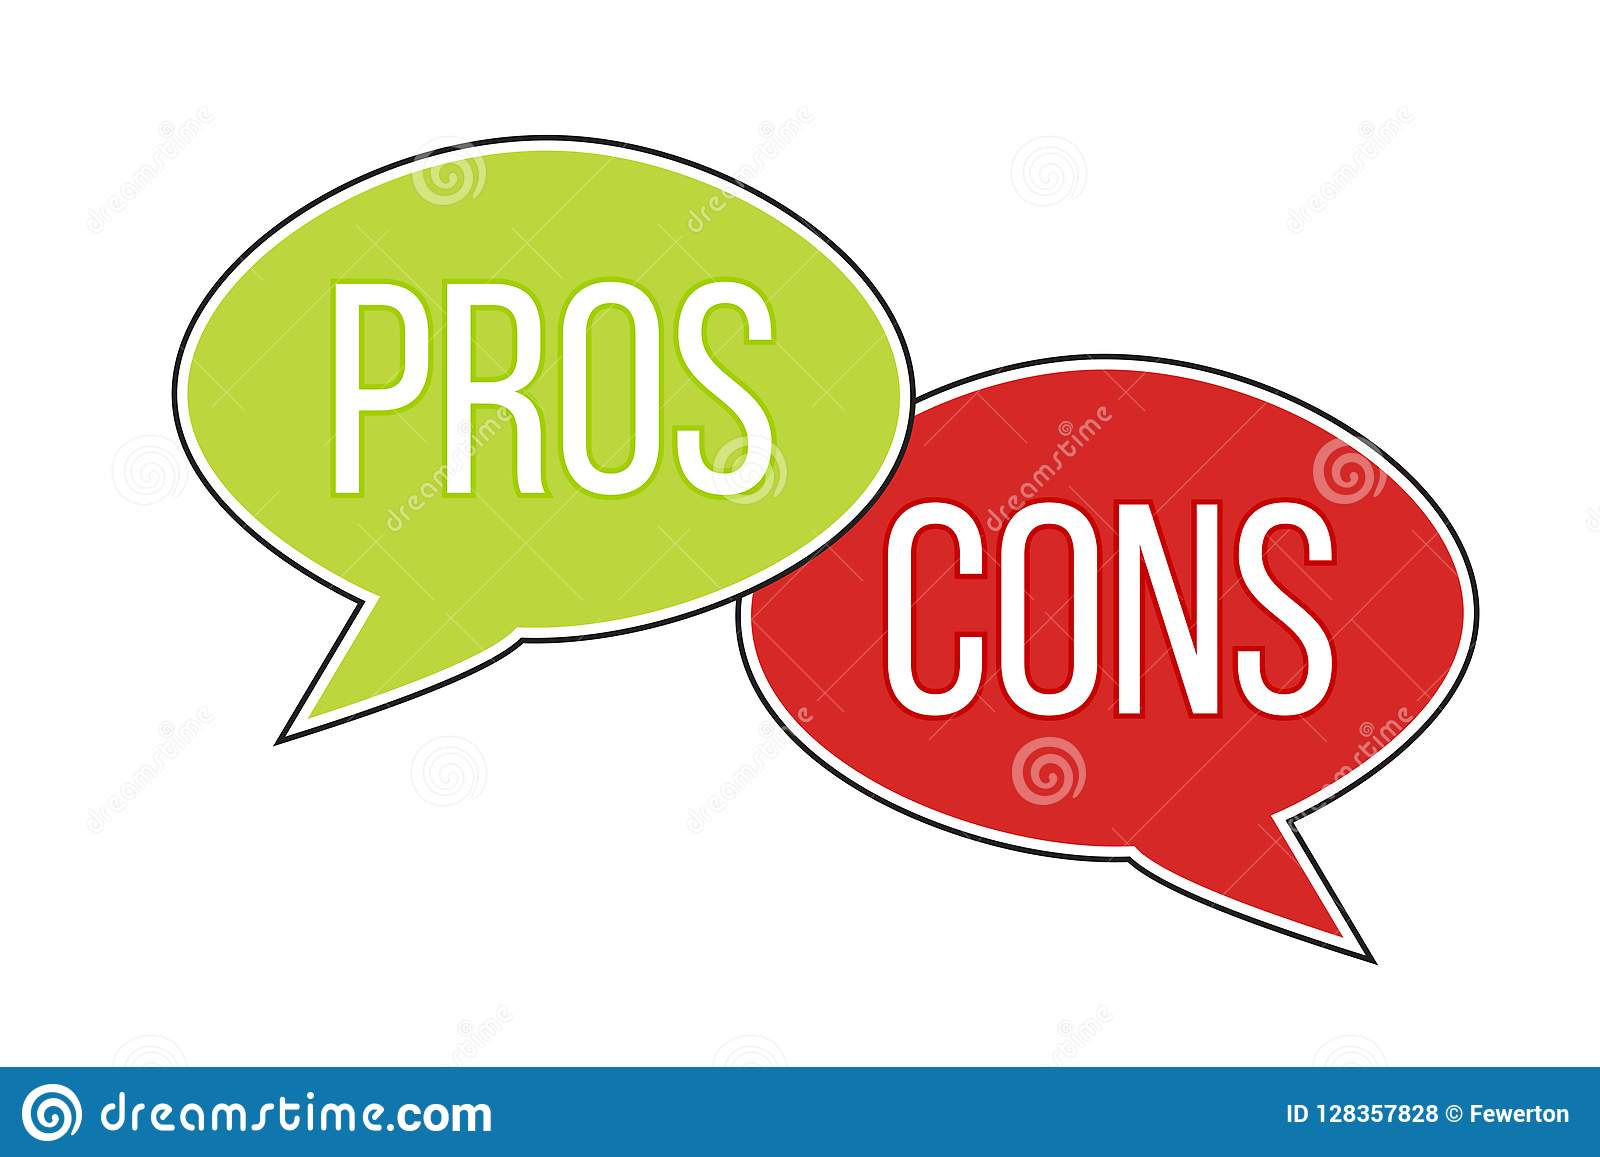 Pros versus cons arguments analysis red left green right word text on opposite balloon speech bubble